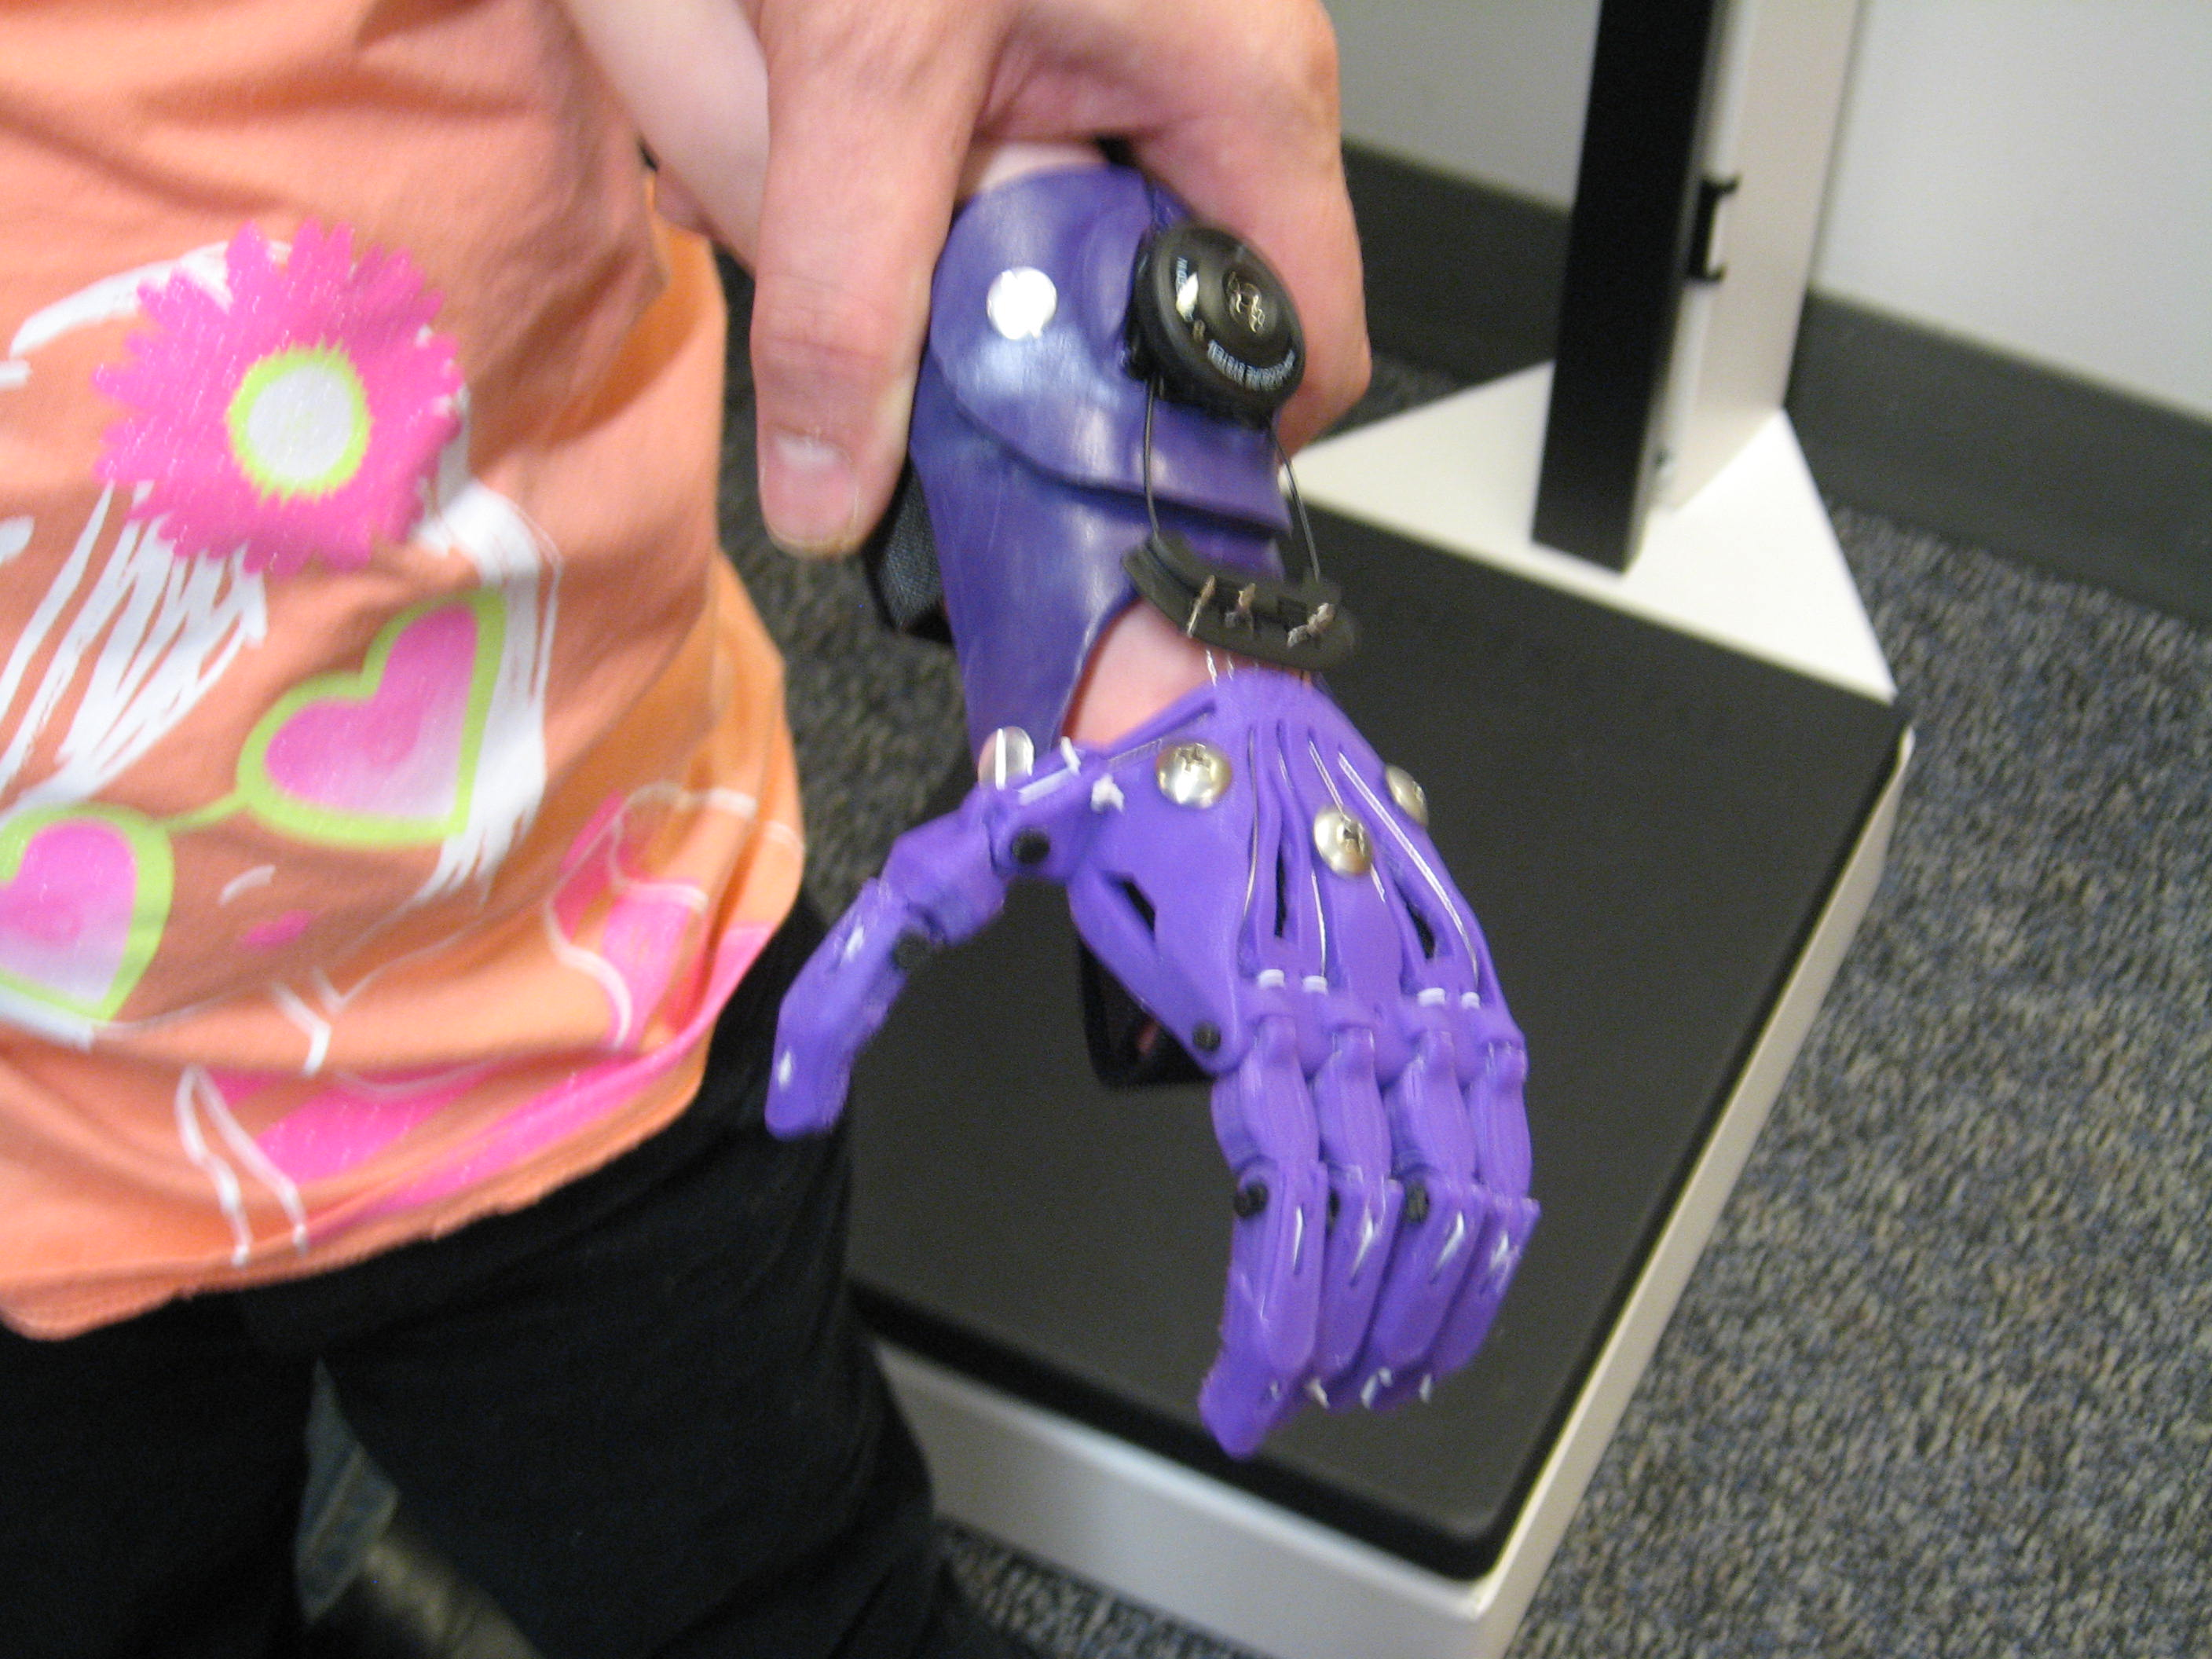 Cyborg Beast, 3D printed prosthetic hand, Creighton Lab, Upper limb differences